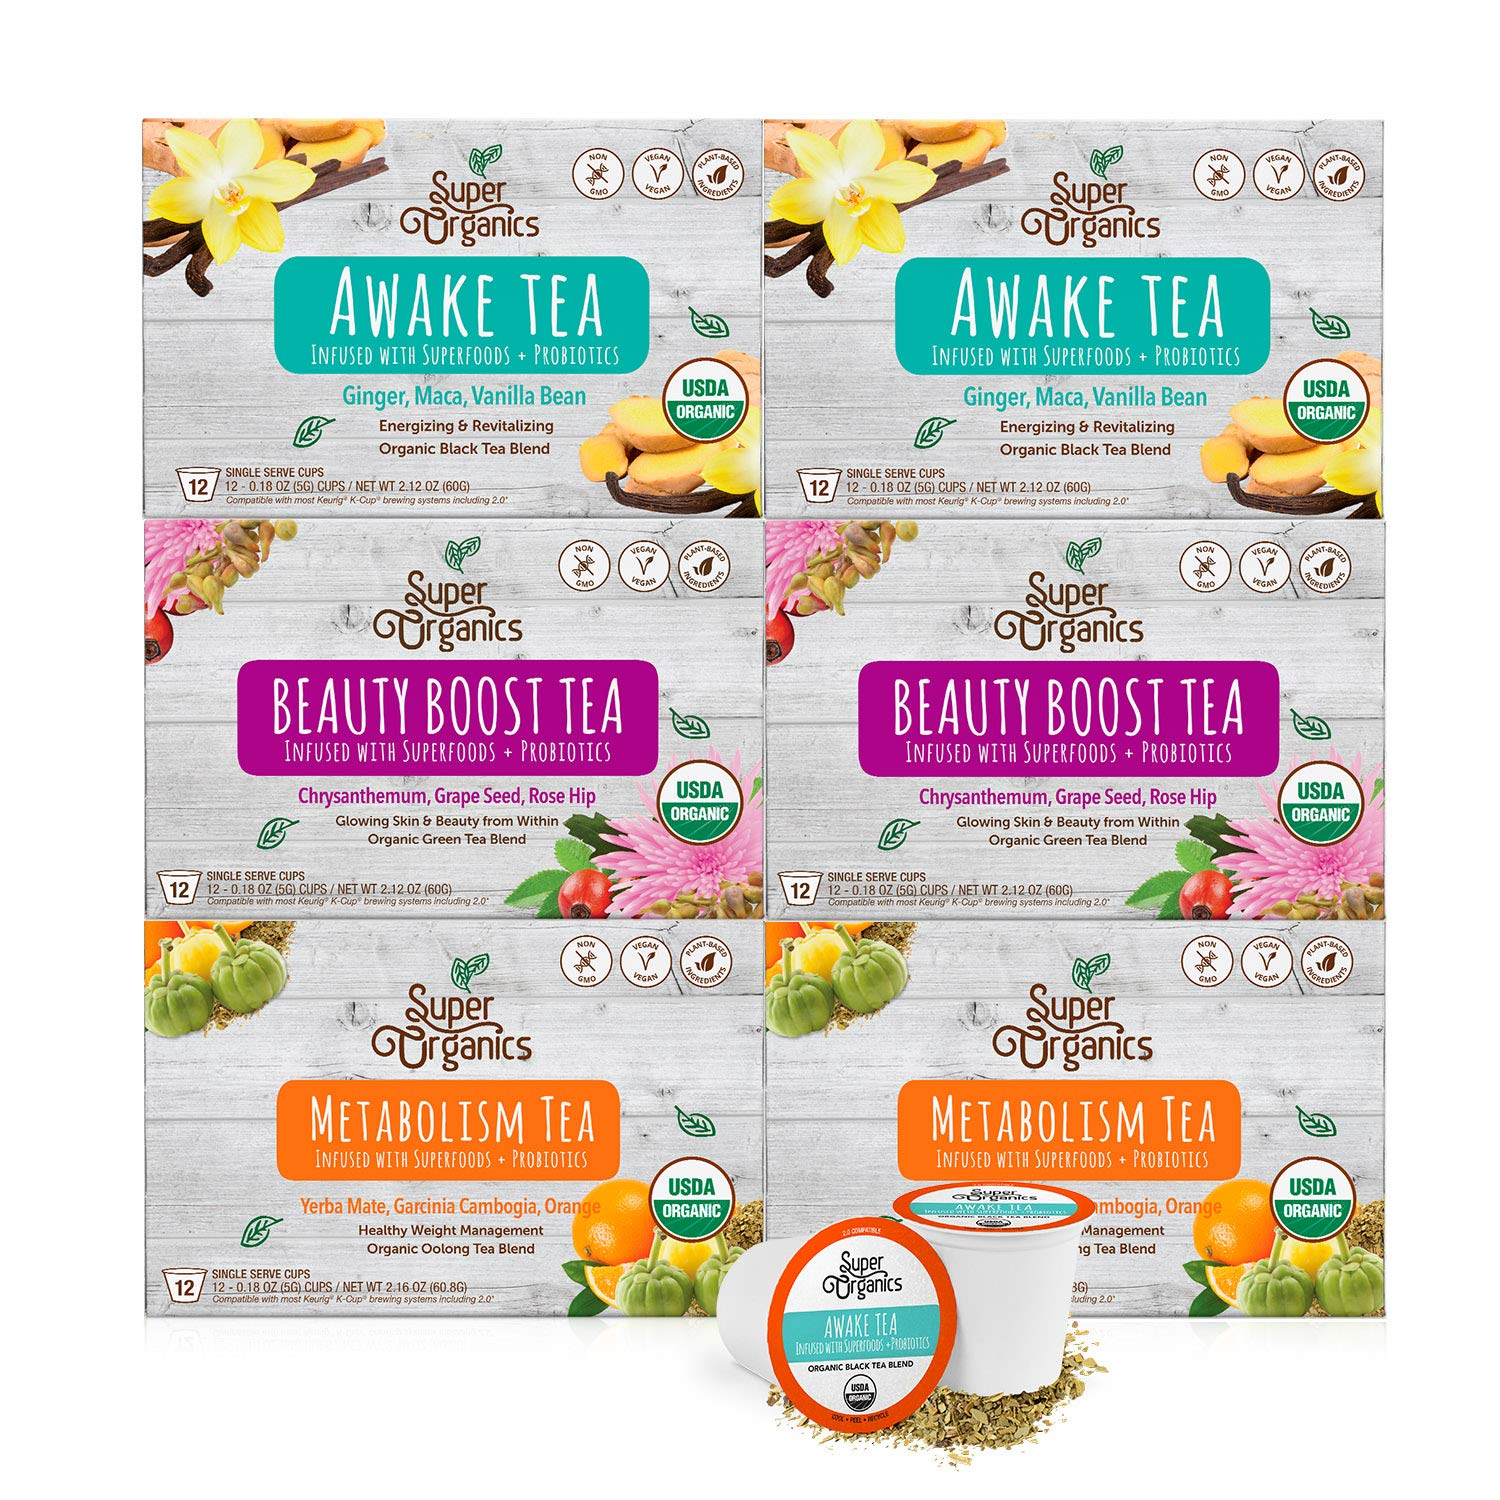 Super Organics Tea Variety Pack with Superfoods and Probiotics | Keurig K-Cup Compatible | Awake Tea, Metabolism Tea, Beauty Tea | USDA Certified Organic, Vegan, Non-GMO, 72ct